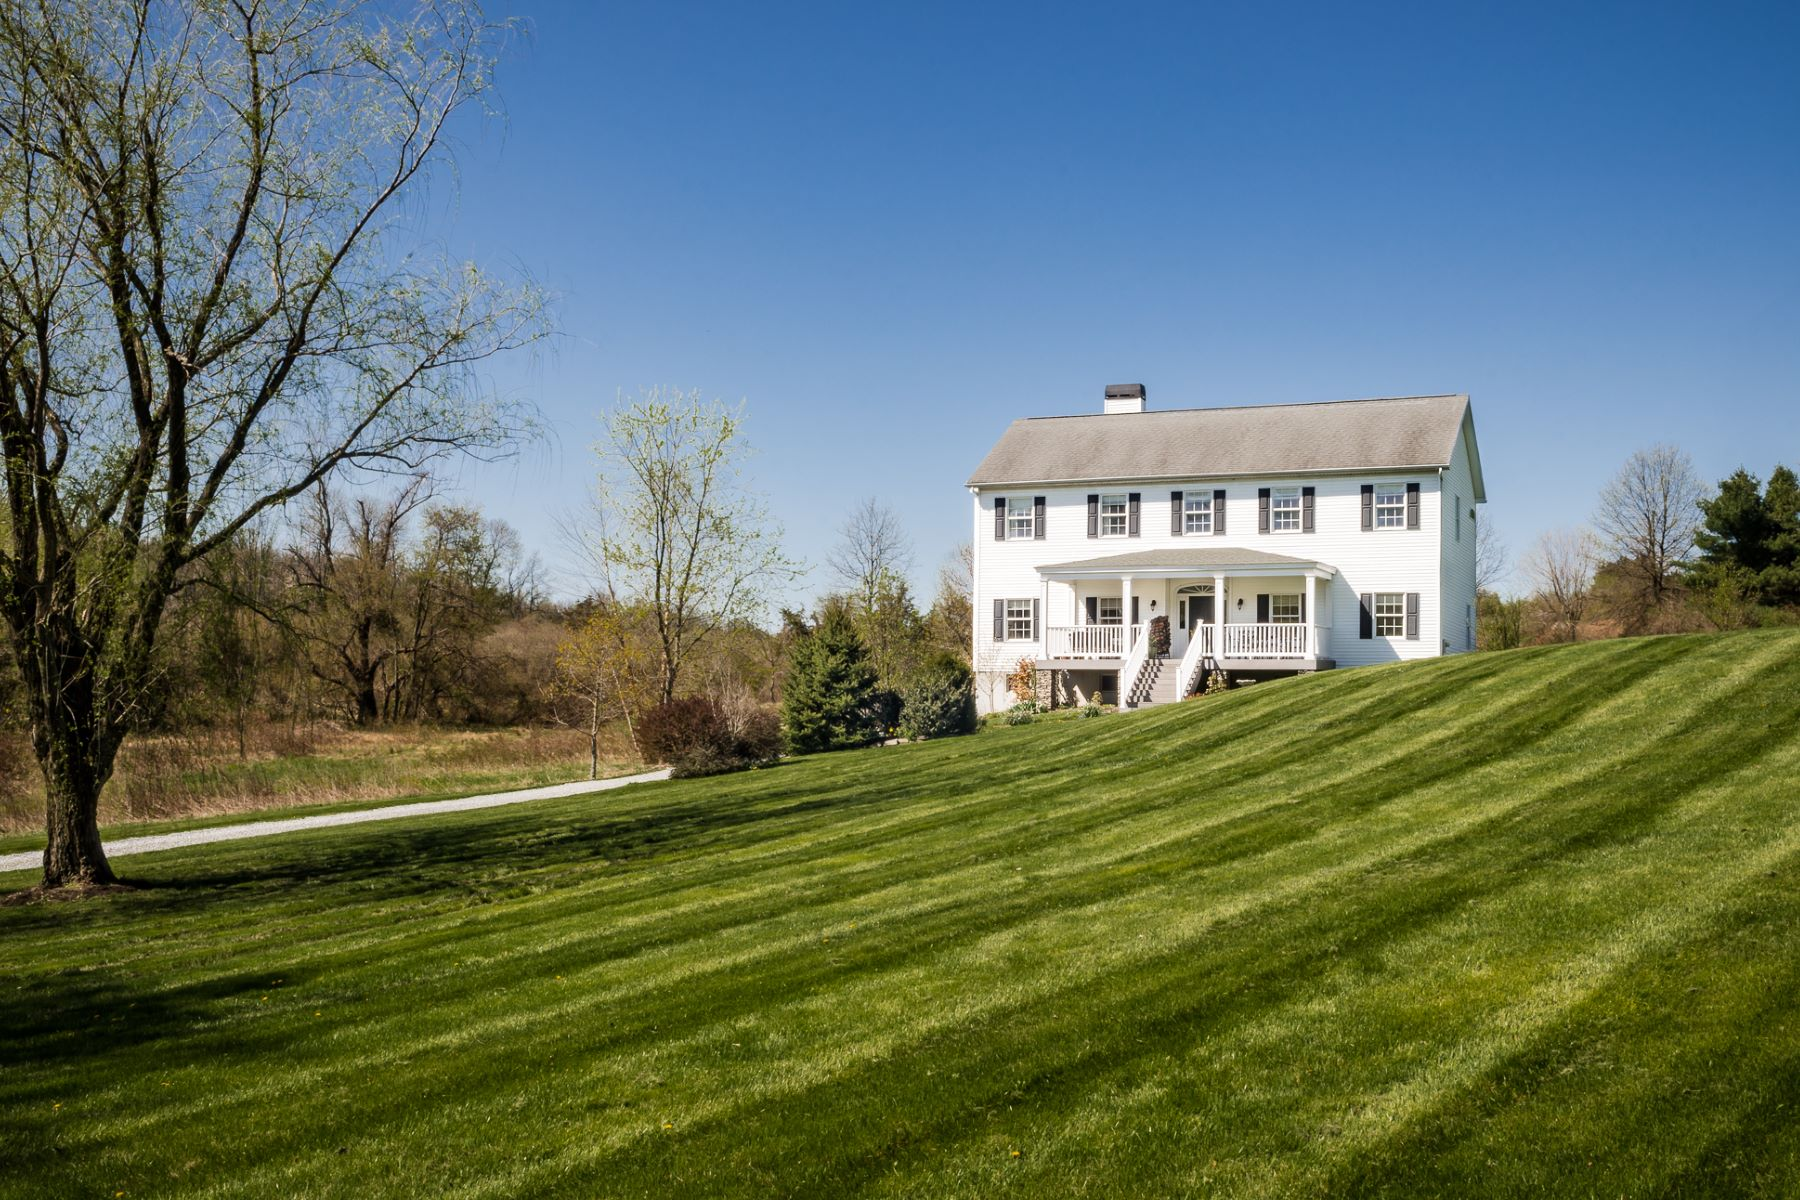 Single Family Home for Sale at Take In The Scenery - Hopewell Township 85 Harbourton Mount Airy Road Lambertville, New Jersey 08530 United States